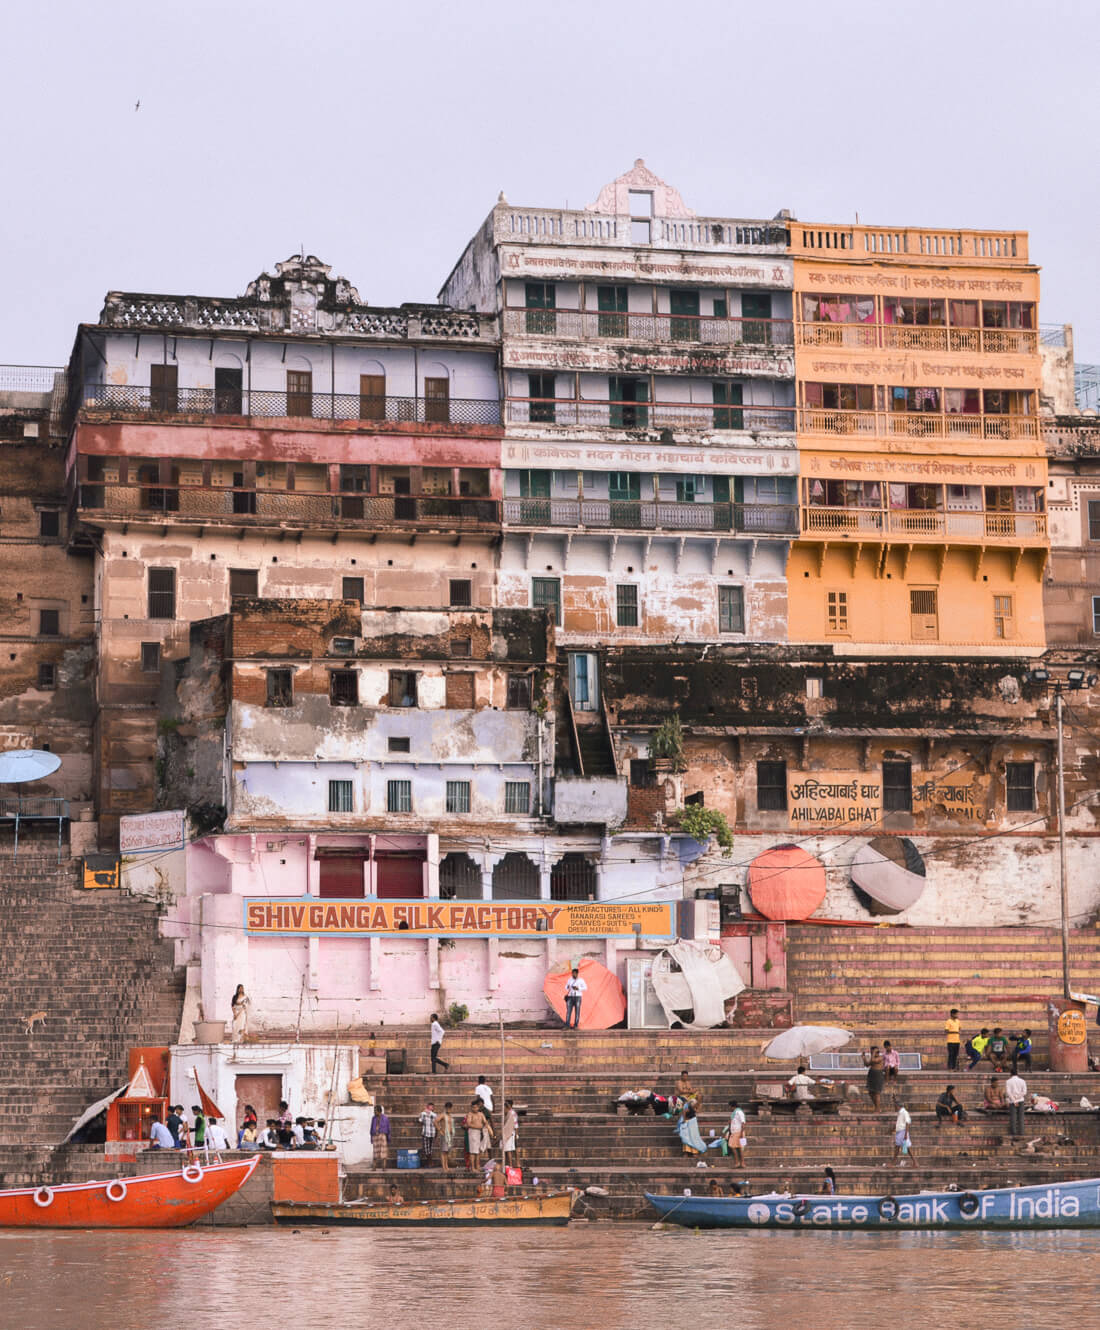 Colourful buildings and boats on the banks of the Ganges River in Varanasi